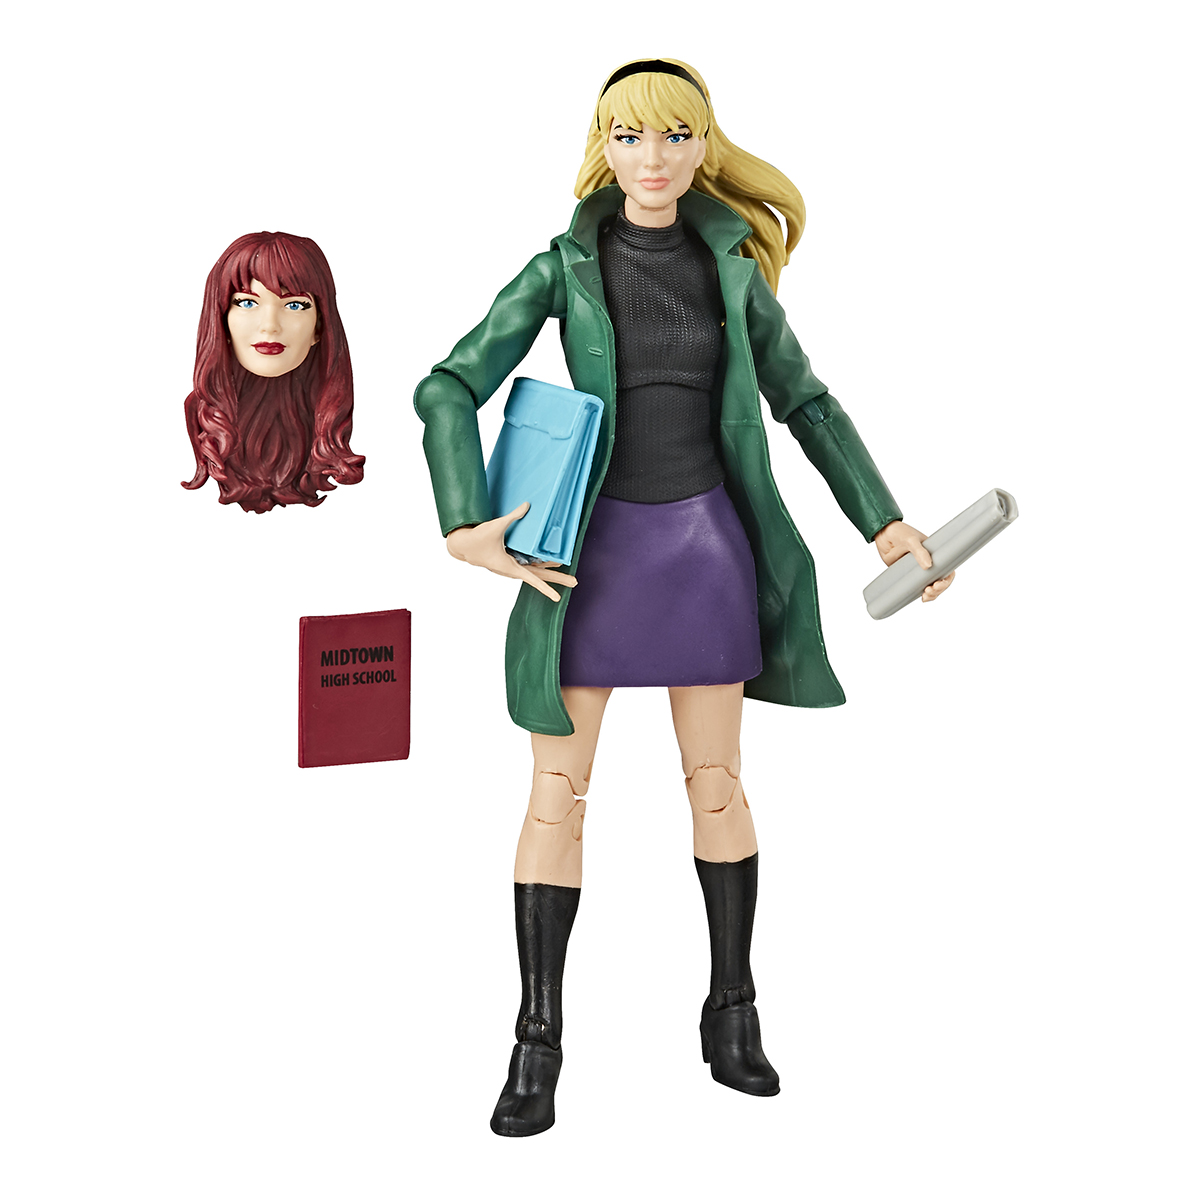 marvel-legends-series-6-inch-gwen-stacy-retro-collection-figure-oop-2